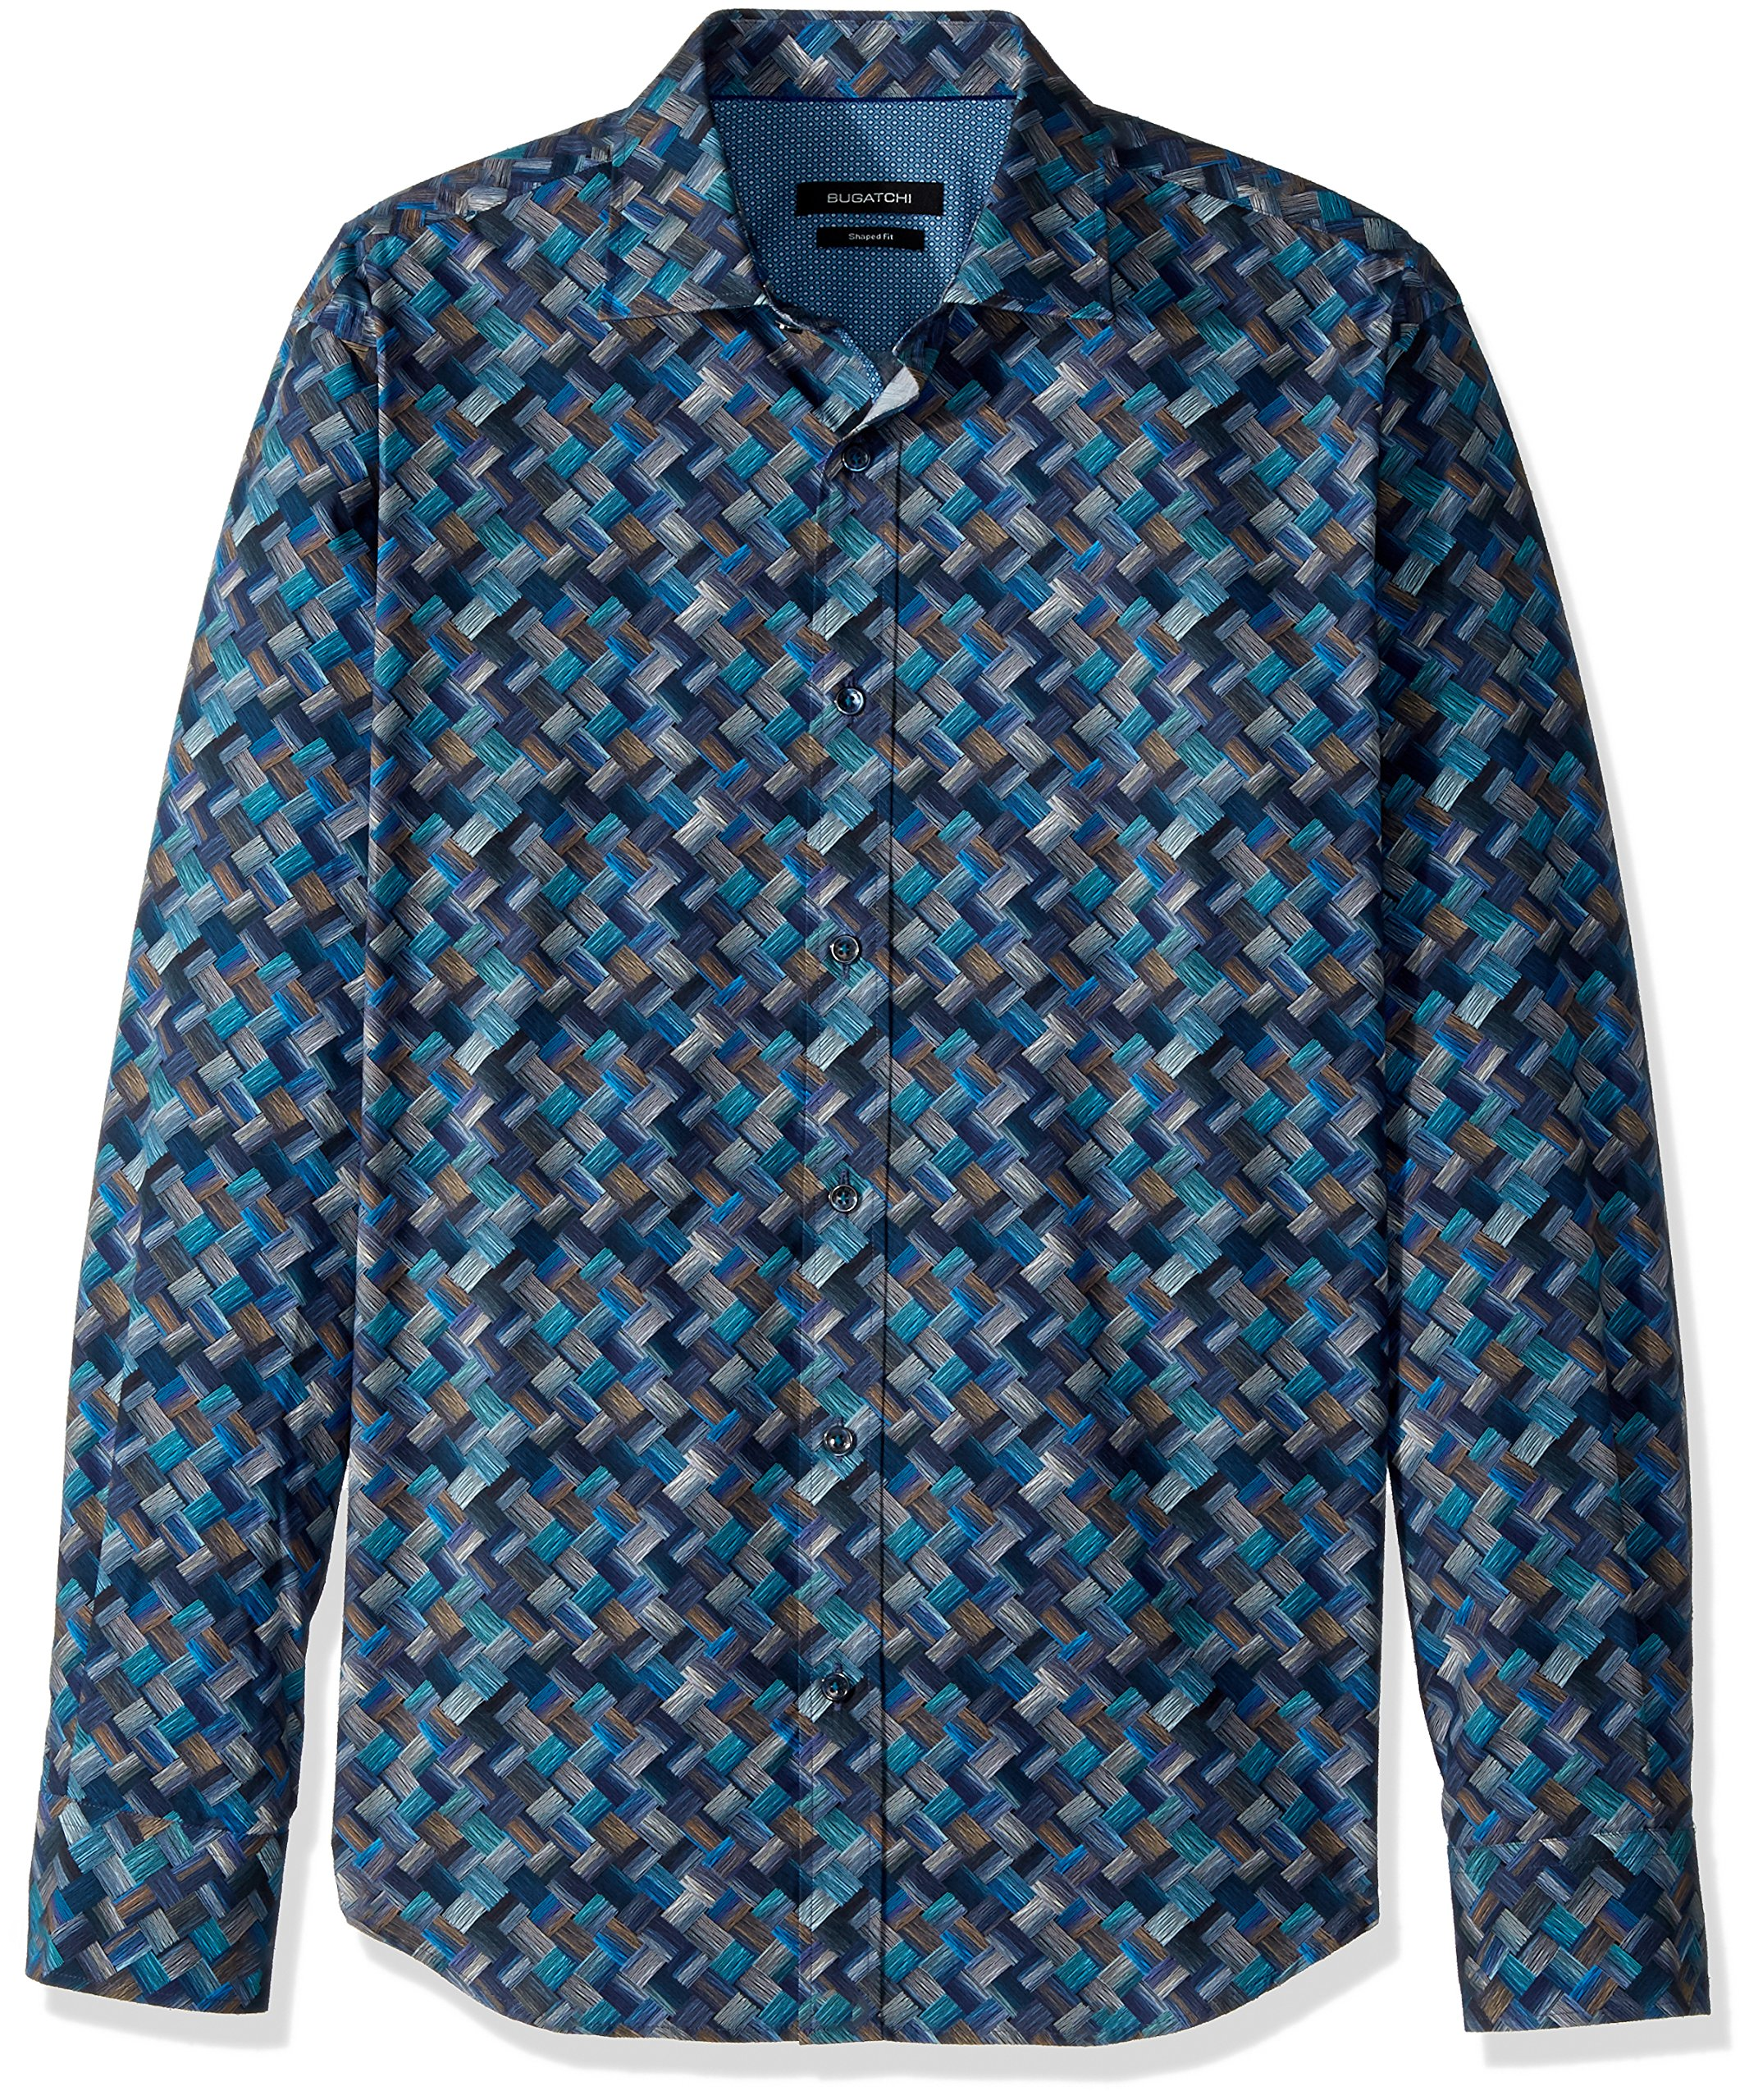 BUGATCHI Men's Cotton Tapered Fit Long Sleeve Shirt, Navy, Small